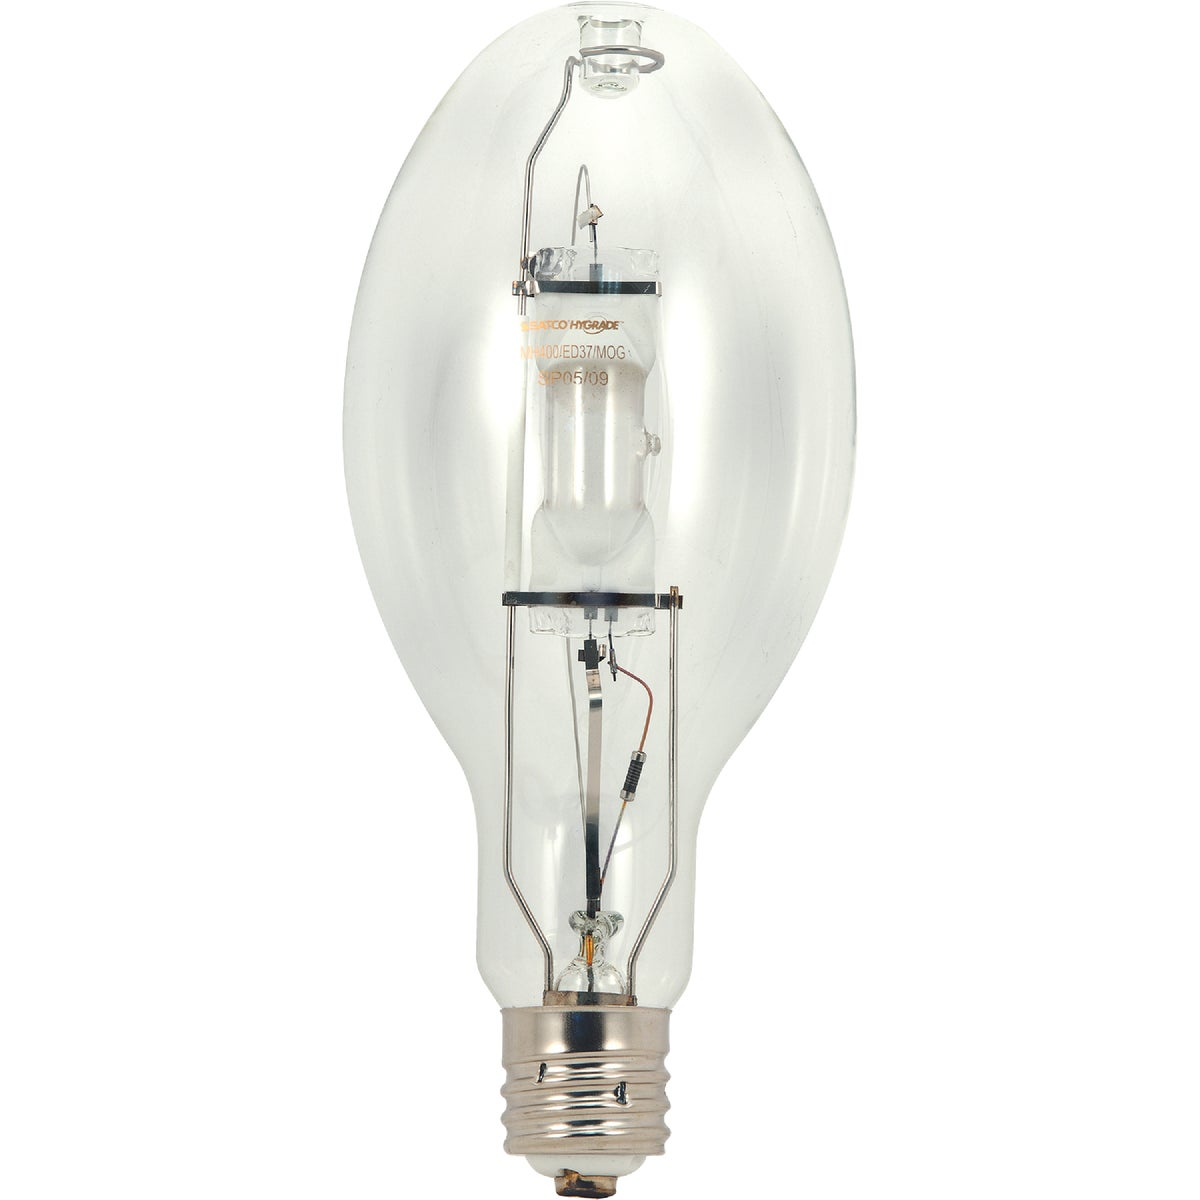 250W METAL HALIDE BULB - 37021 by Westinghouse Lightng